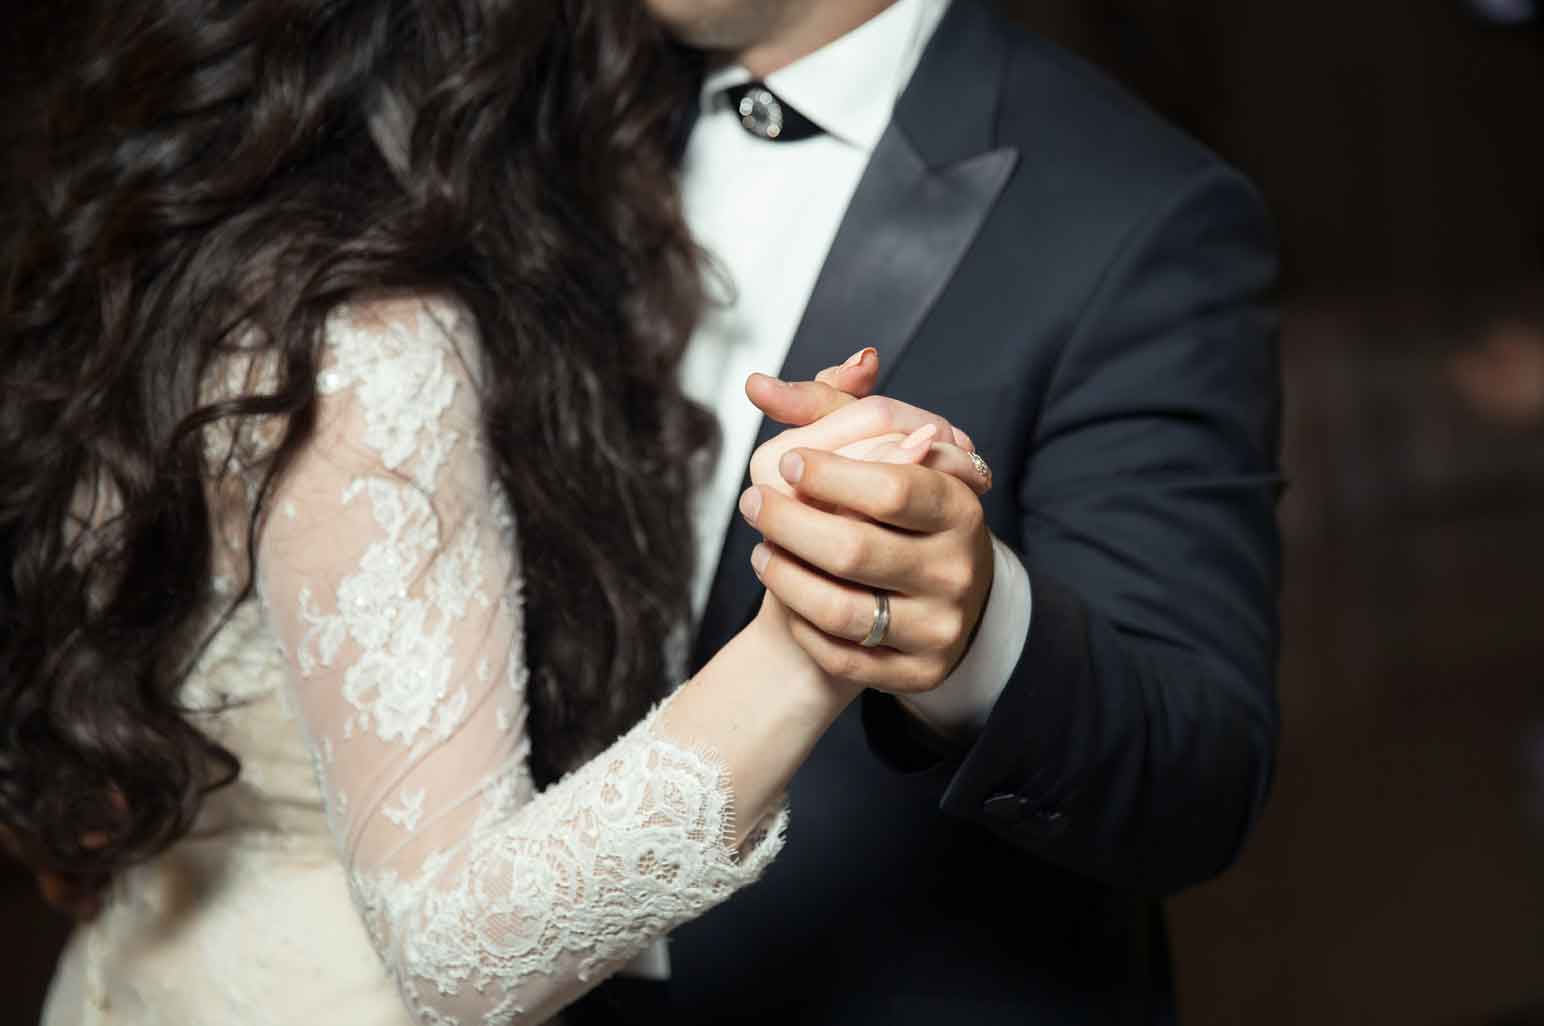 How to Choose the Right Music for Your Wedding Day